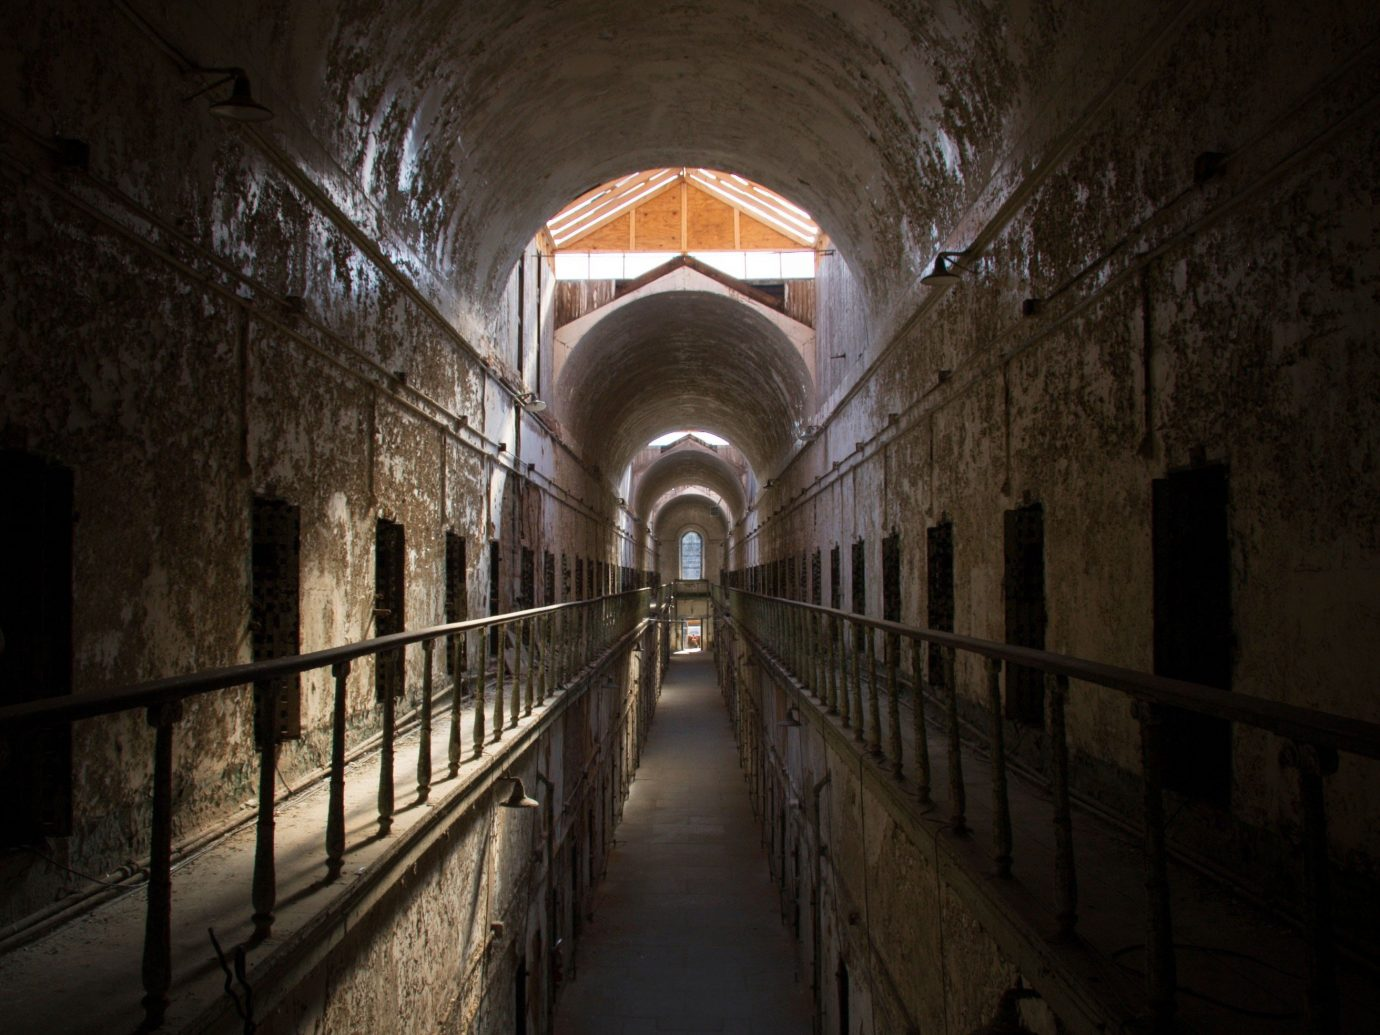 Offbeat night darkness light building tunnel symmetry crypt railing stair walkway